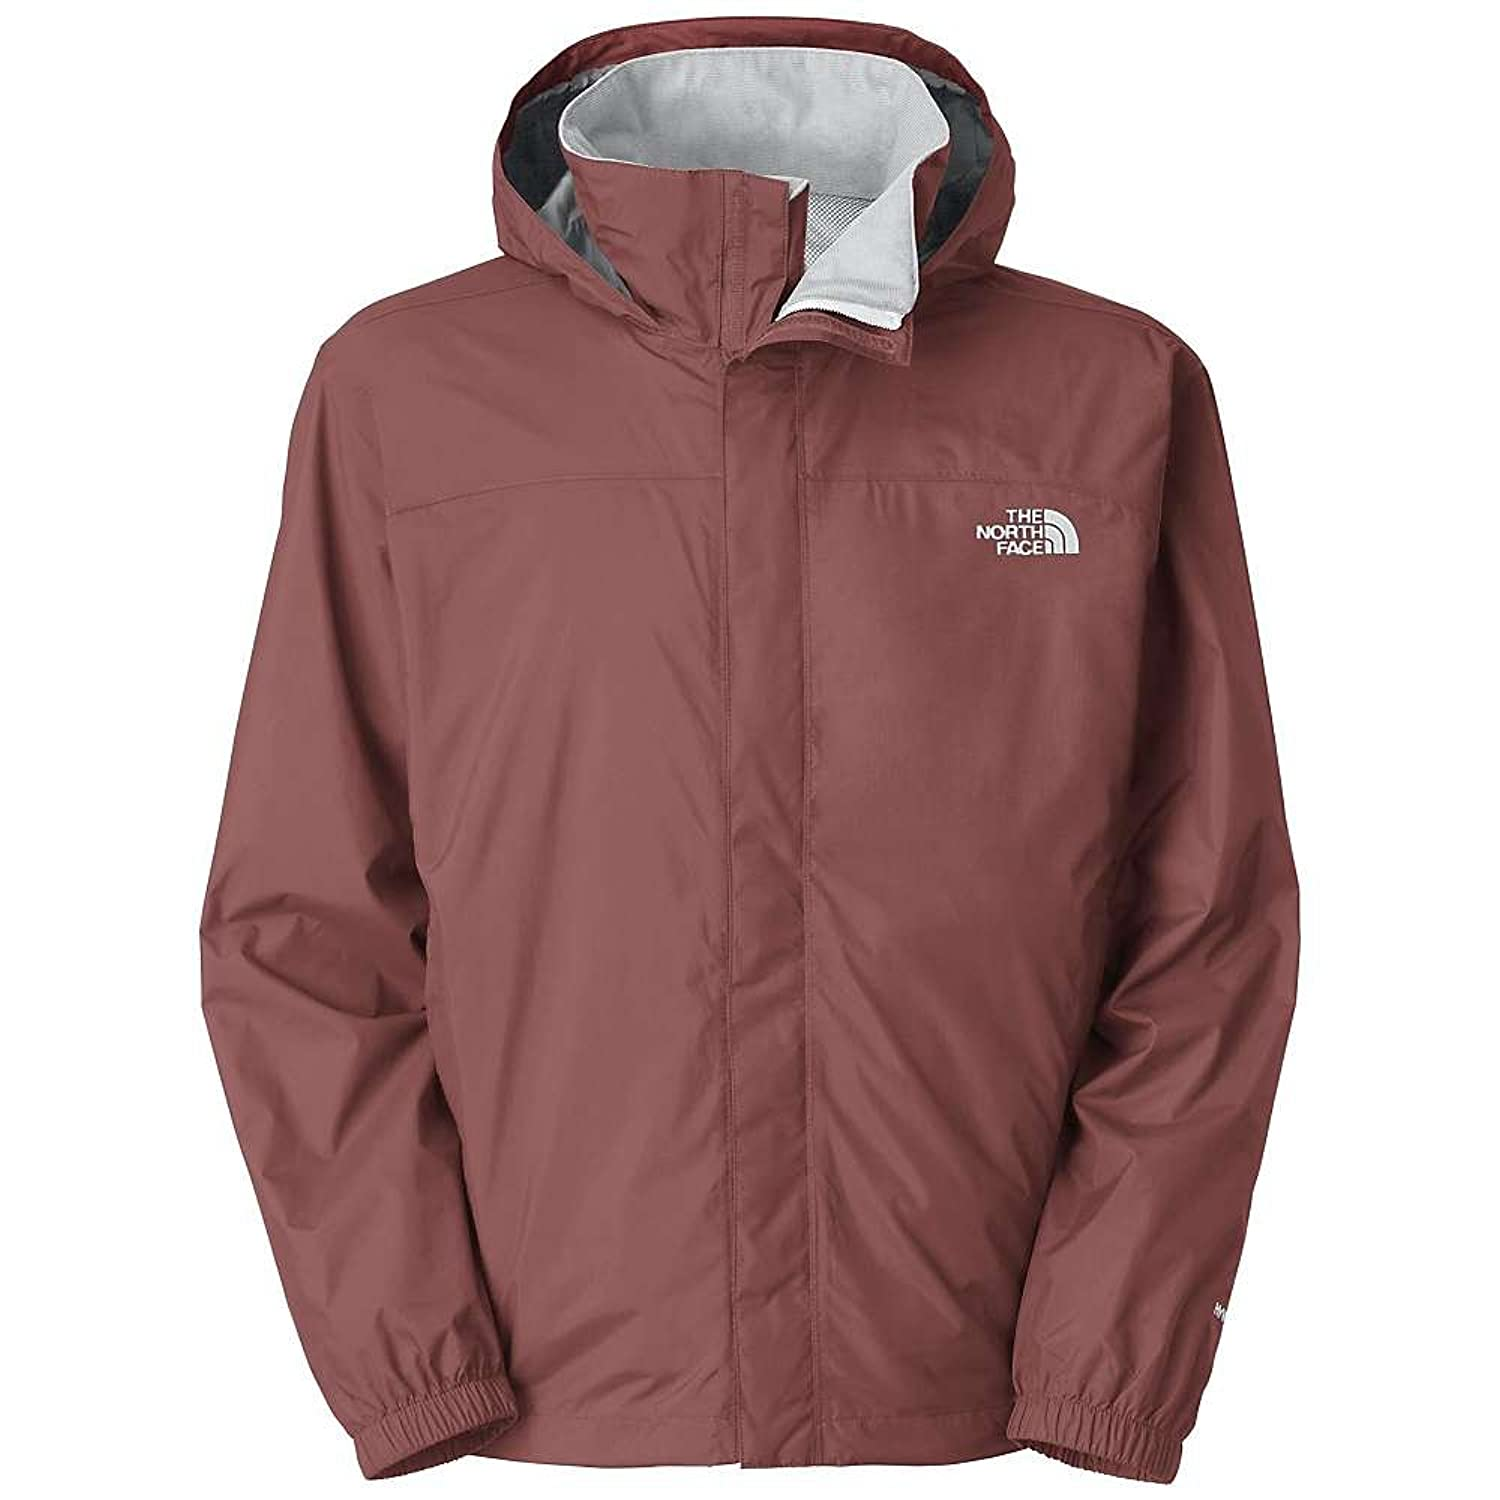 The North Face Men's Resolve Jacket the north face women's venture jacket